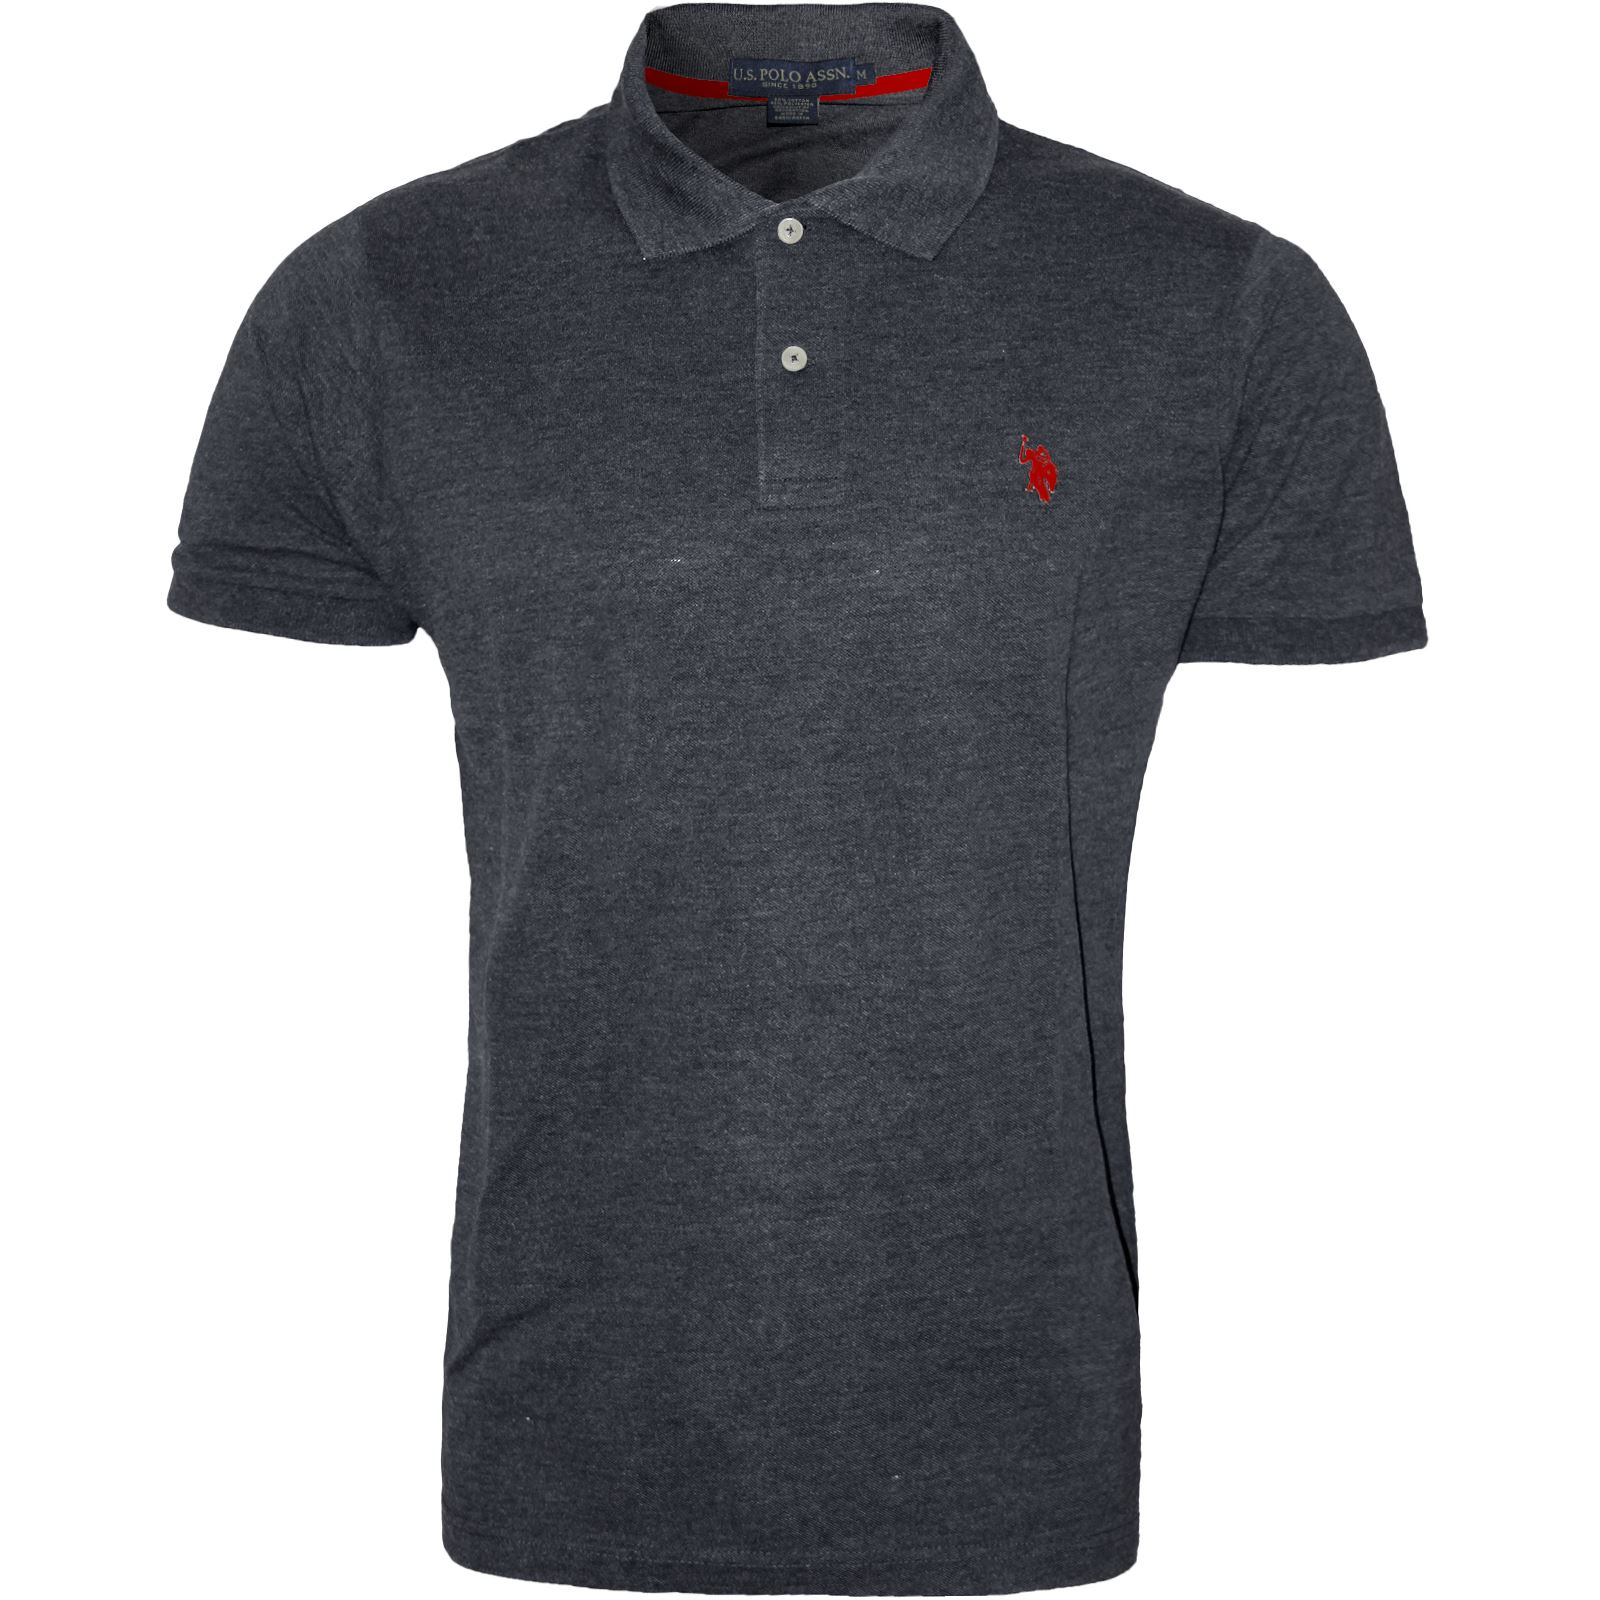 Mens polo shirt original us polo assn branded t shirt top for Branded polo t shirts